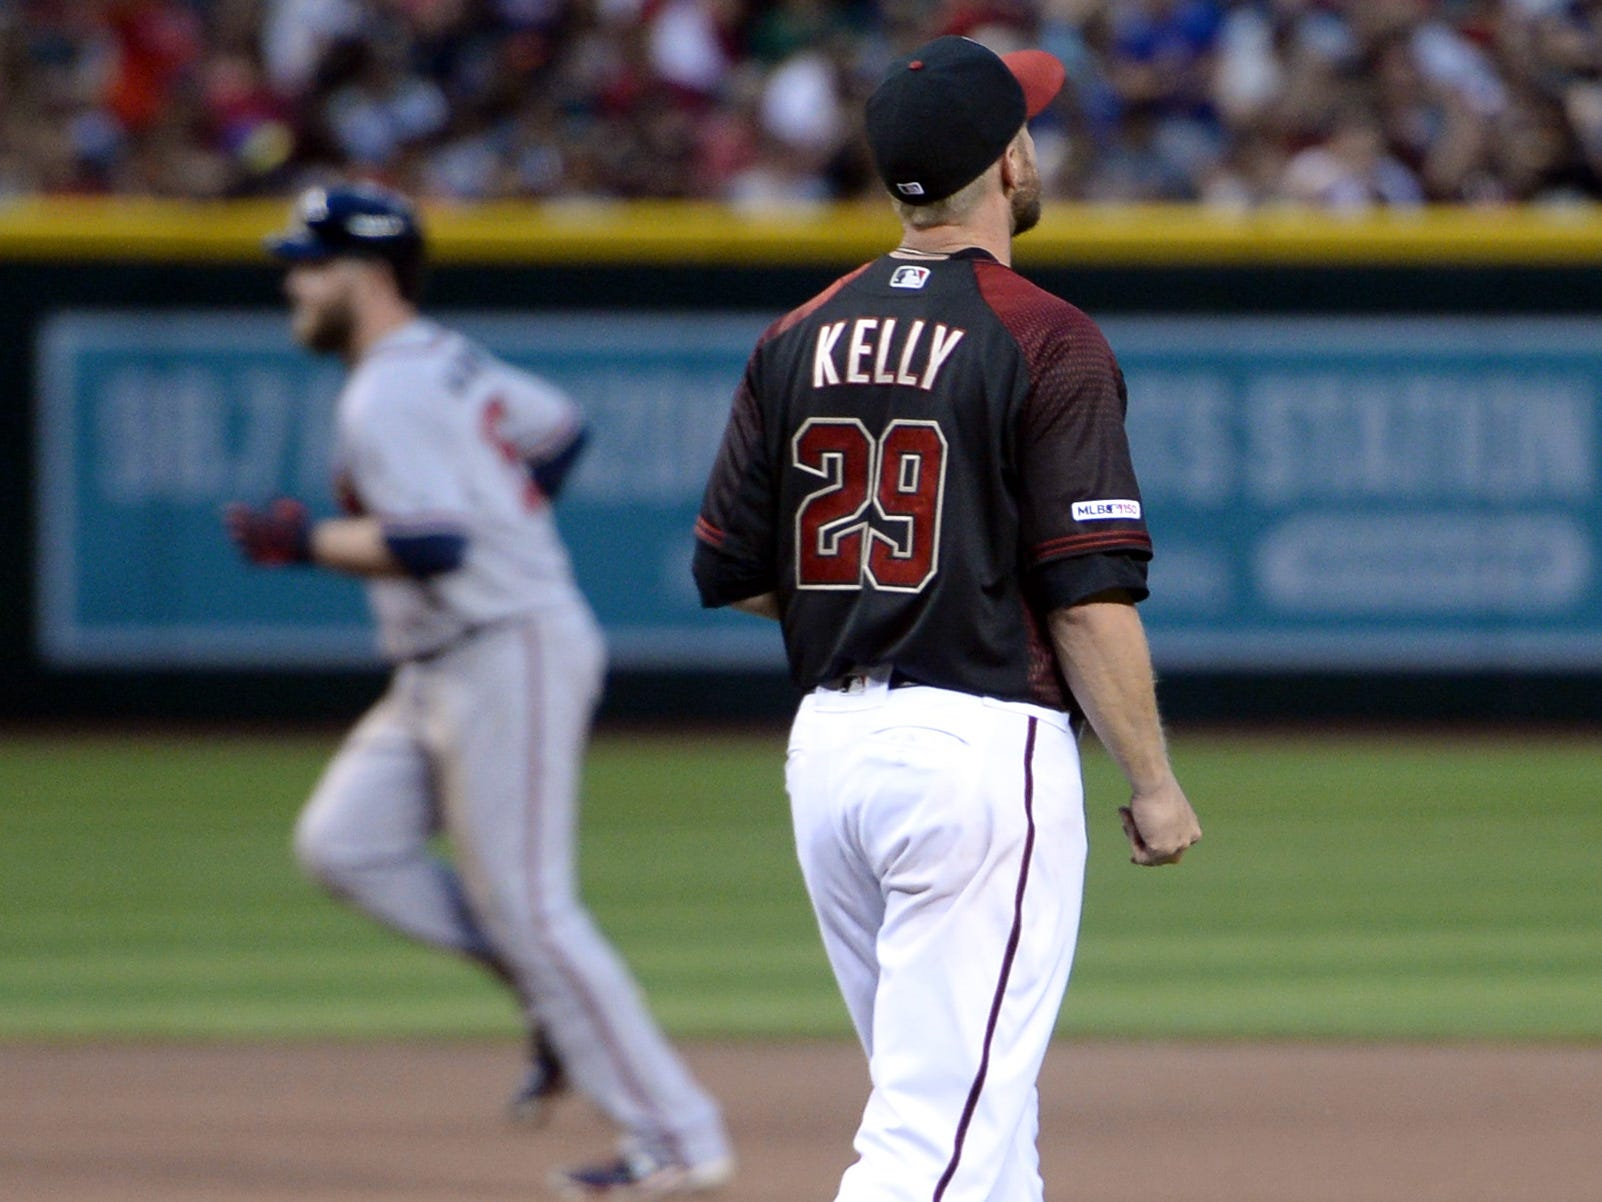 May 11, 2019; Phoenix, AZ, USA; Arizona Diamondbacks starting pitcher Merrill Kelly (29) reacts after giving up a solo home run to Atlanta Braves catcher Brian McCann (16) during the seventh inning at Chase Field.